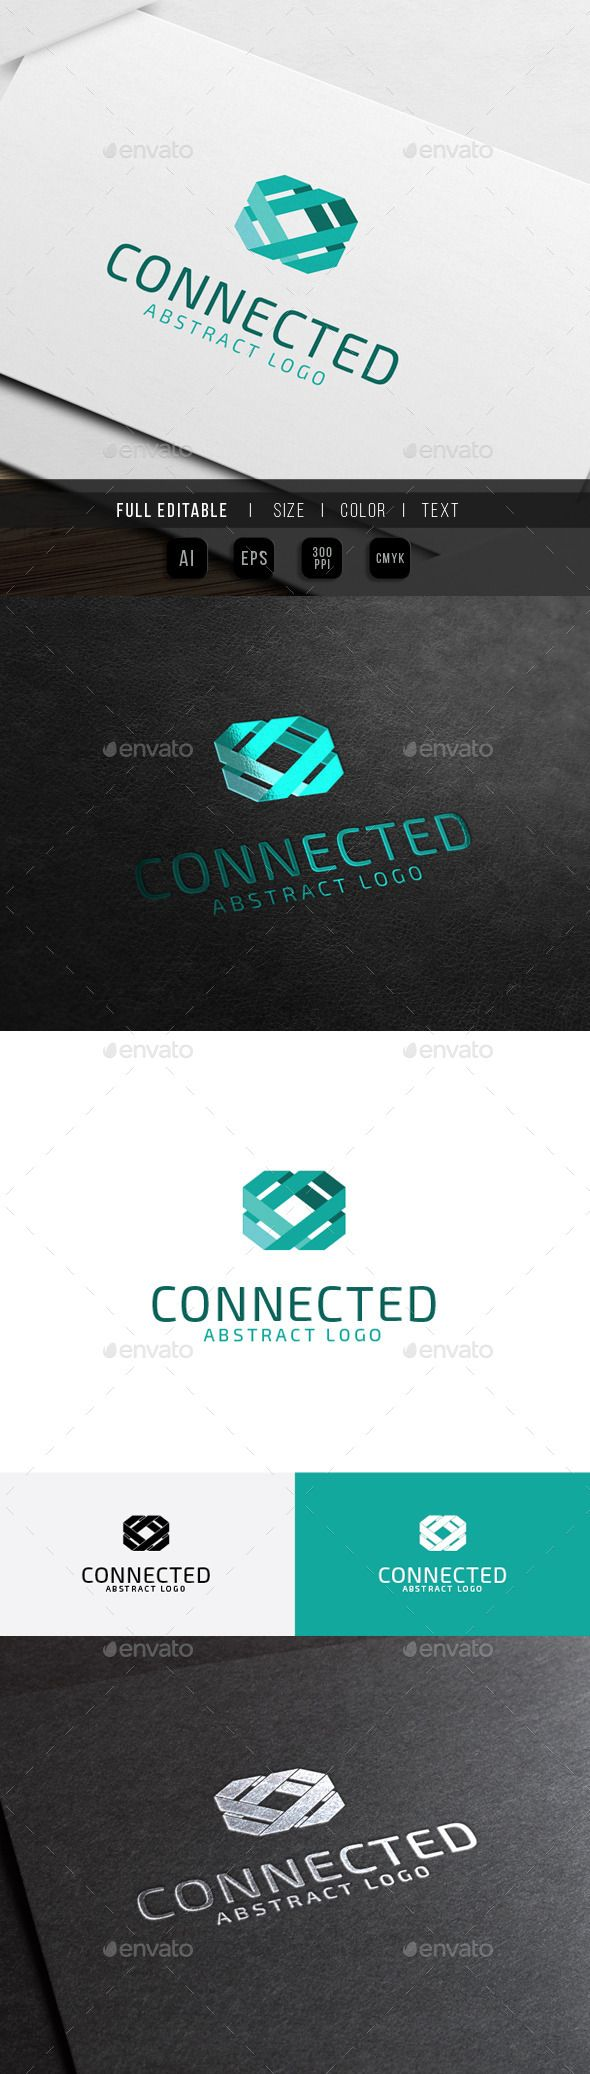 Abstract Connect - Link Technology Logo Template Vector EPS, AI #design #logotype Download: http://graphicriver.net/item/abstract-connect-link-technology/10423181?ref=ksioks